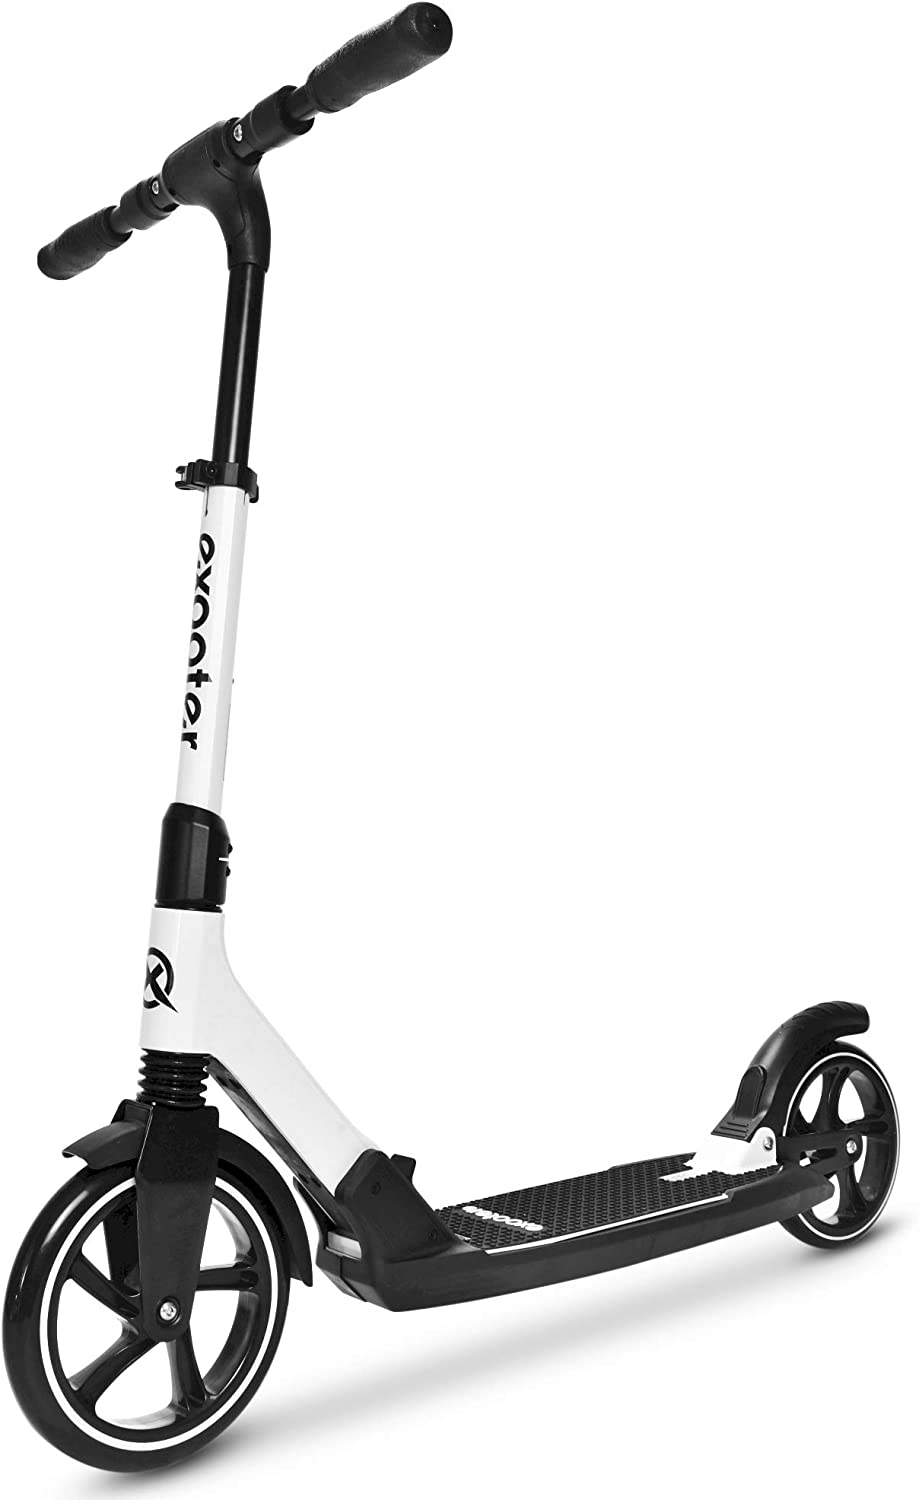 EXOOTER M7 Manual Adult Kick Scooter with Dual Suspension Shocks and 240mm 200mm Big Wheels.